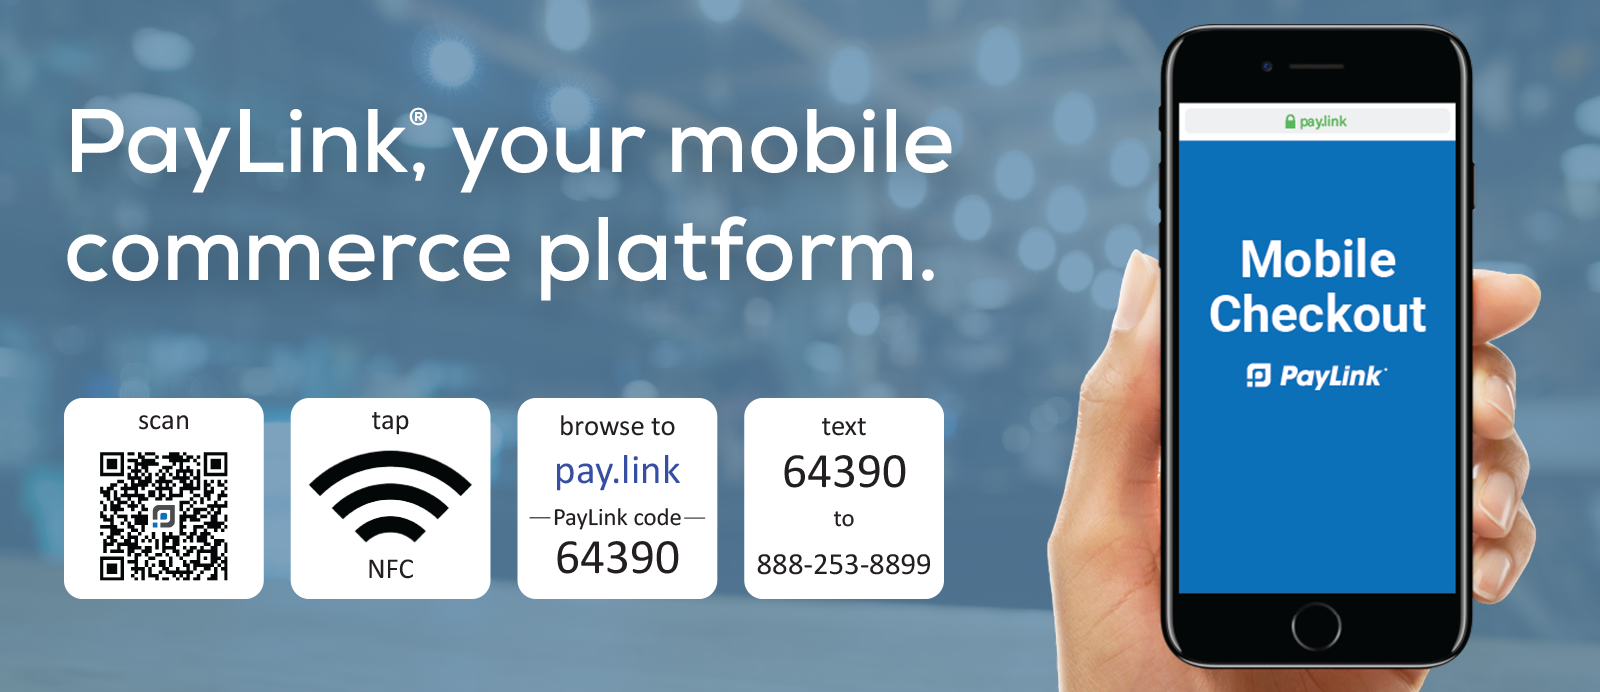 PayLink mobile ordering and contactless payments with QR codes, NFC tags and SMS text messaging.